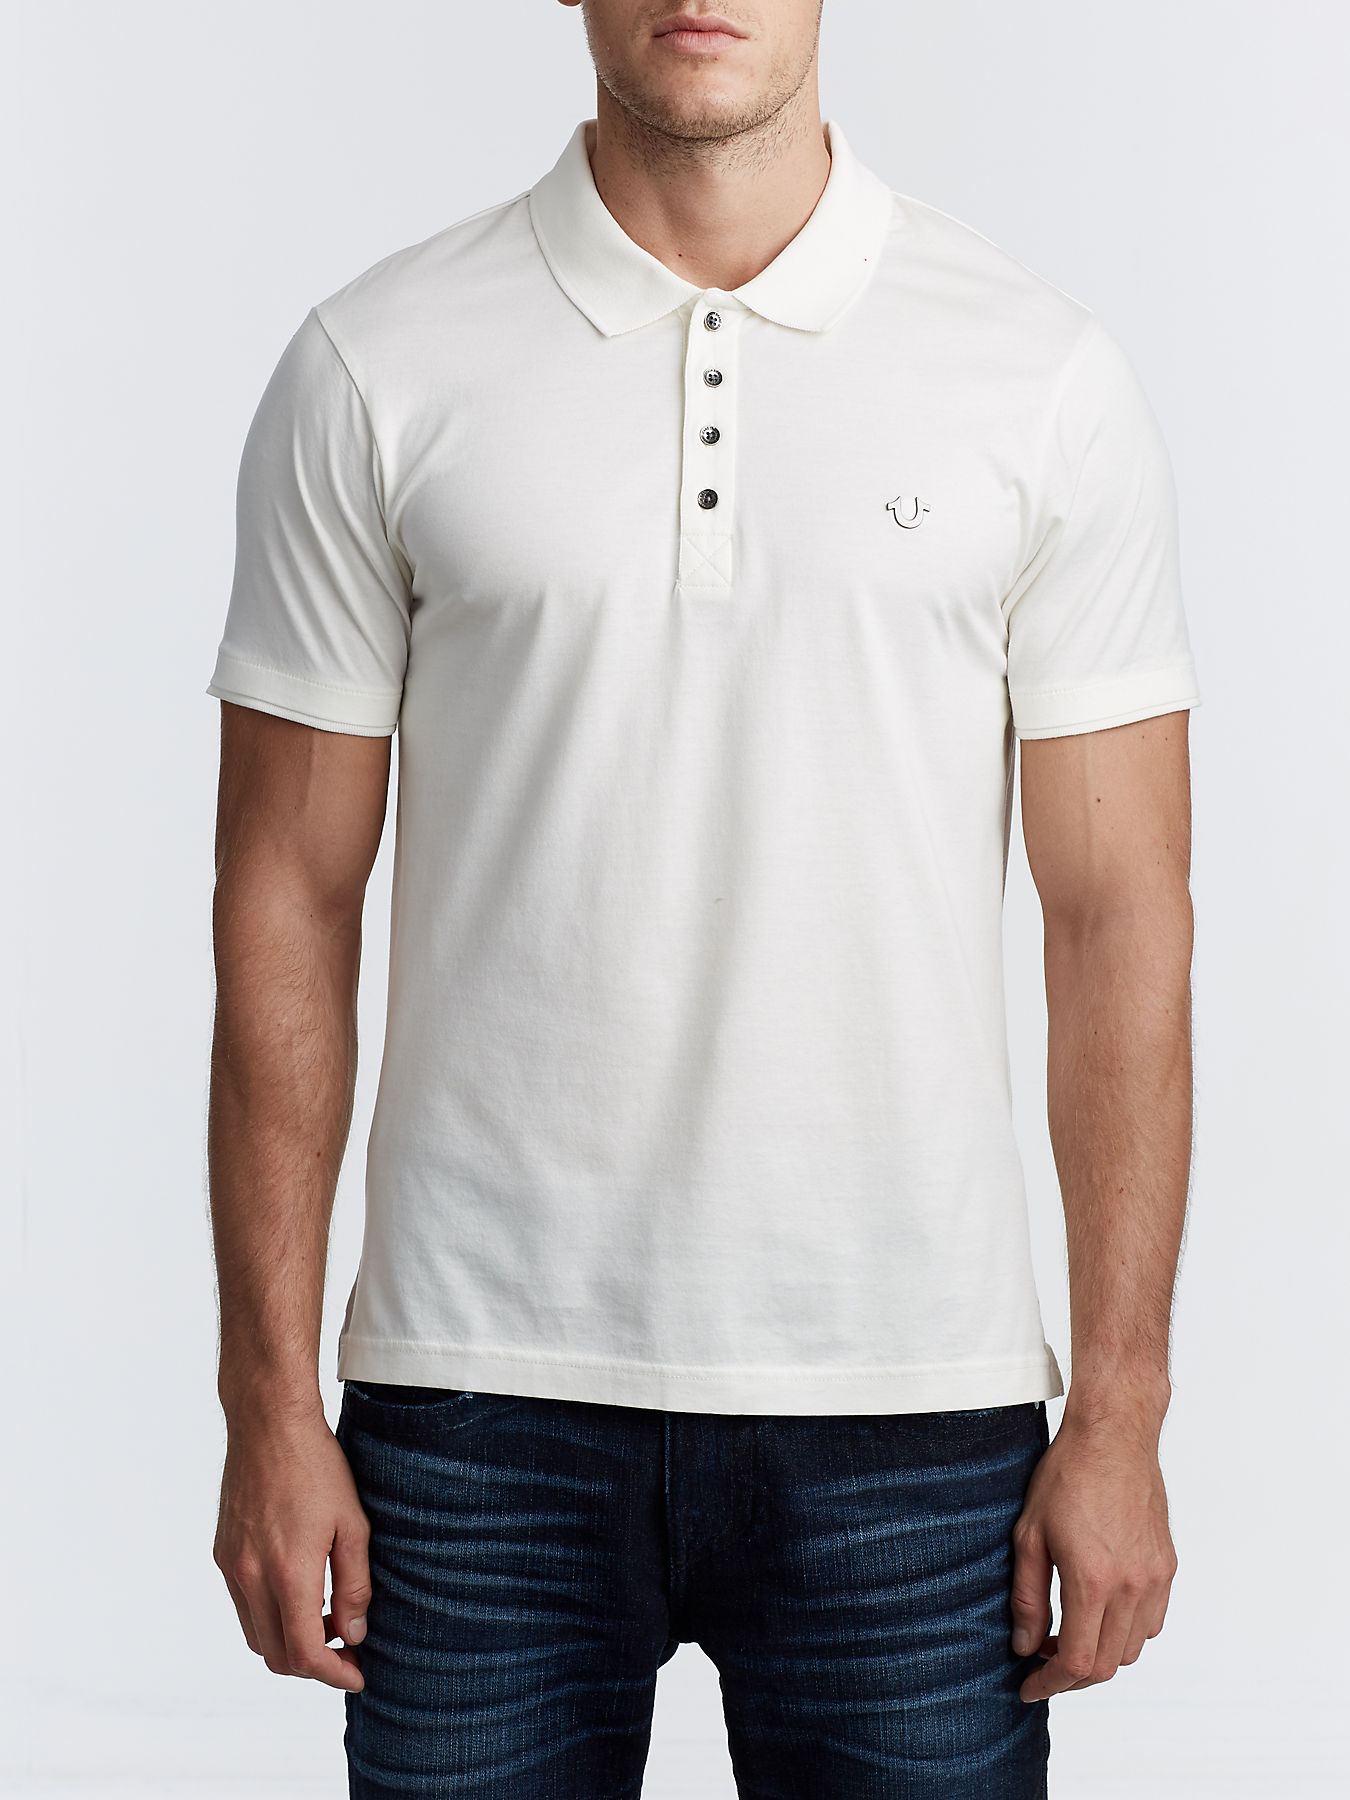 25bb7a482 MENS MERCERIZED COTTON POLO SHIRT